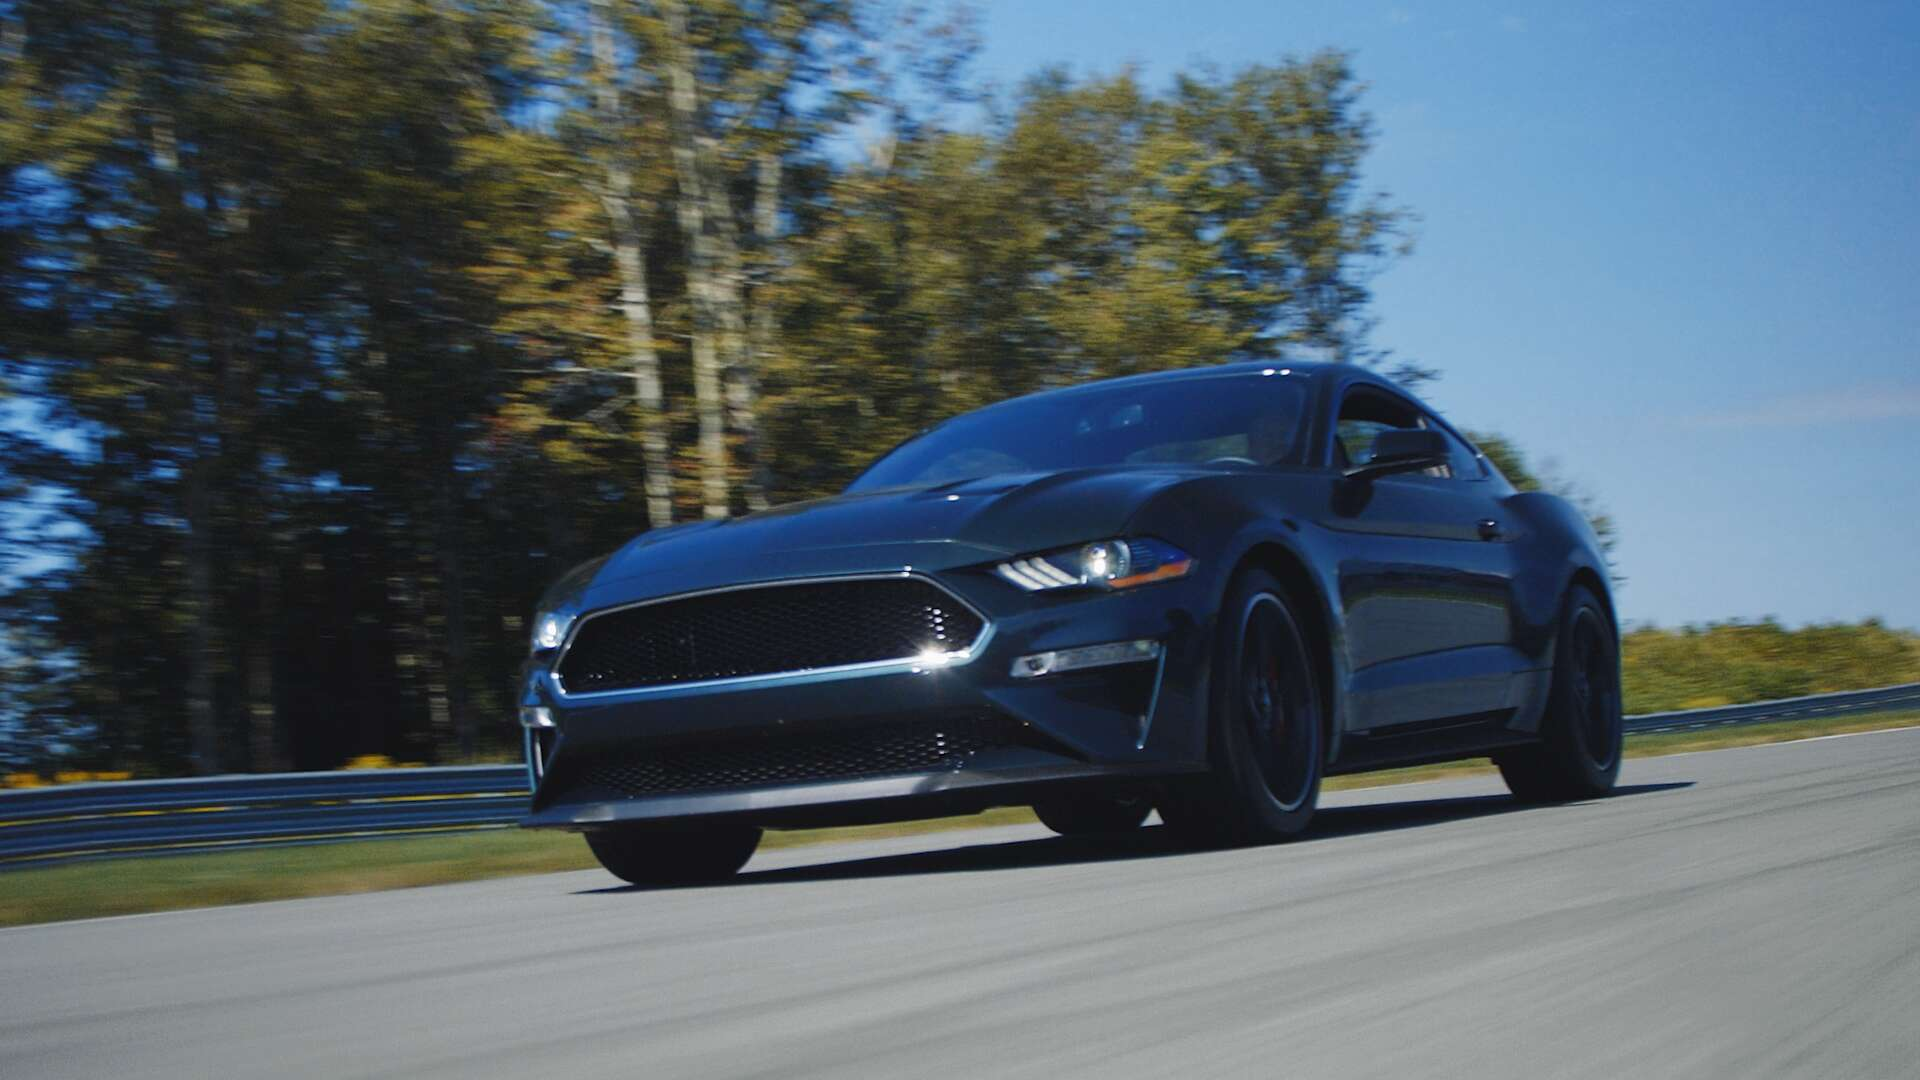 2019 Ford Mustang Bullitt Track Test Review Mcqueen Fan Or No A Go Back Gt Gallery For Automotive Electrical Circuit Symbols Chris Szczypala